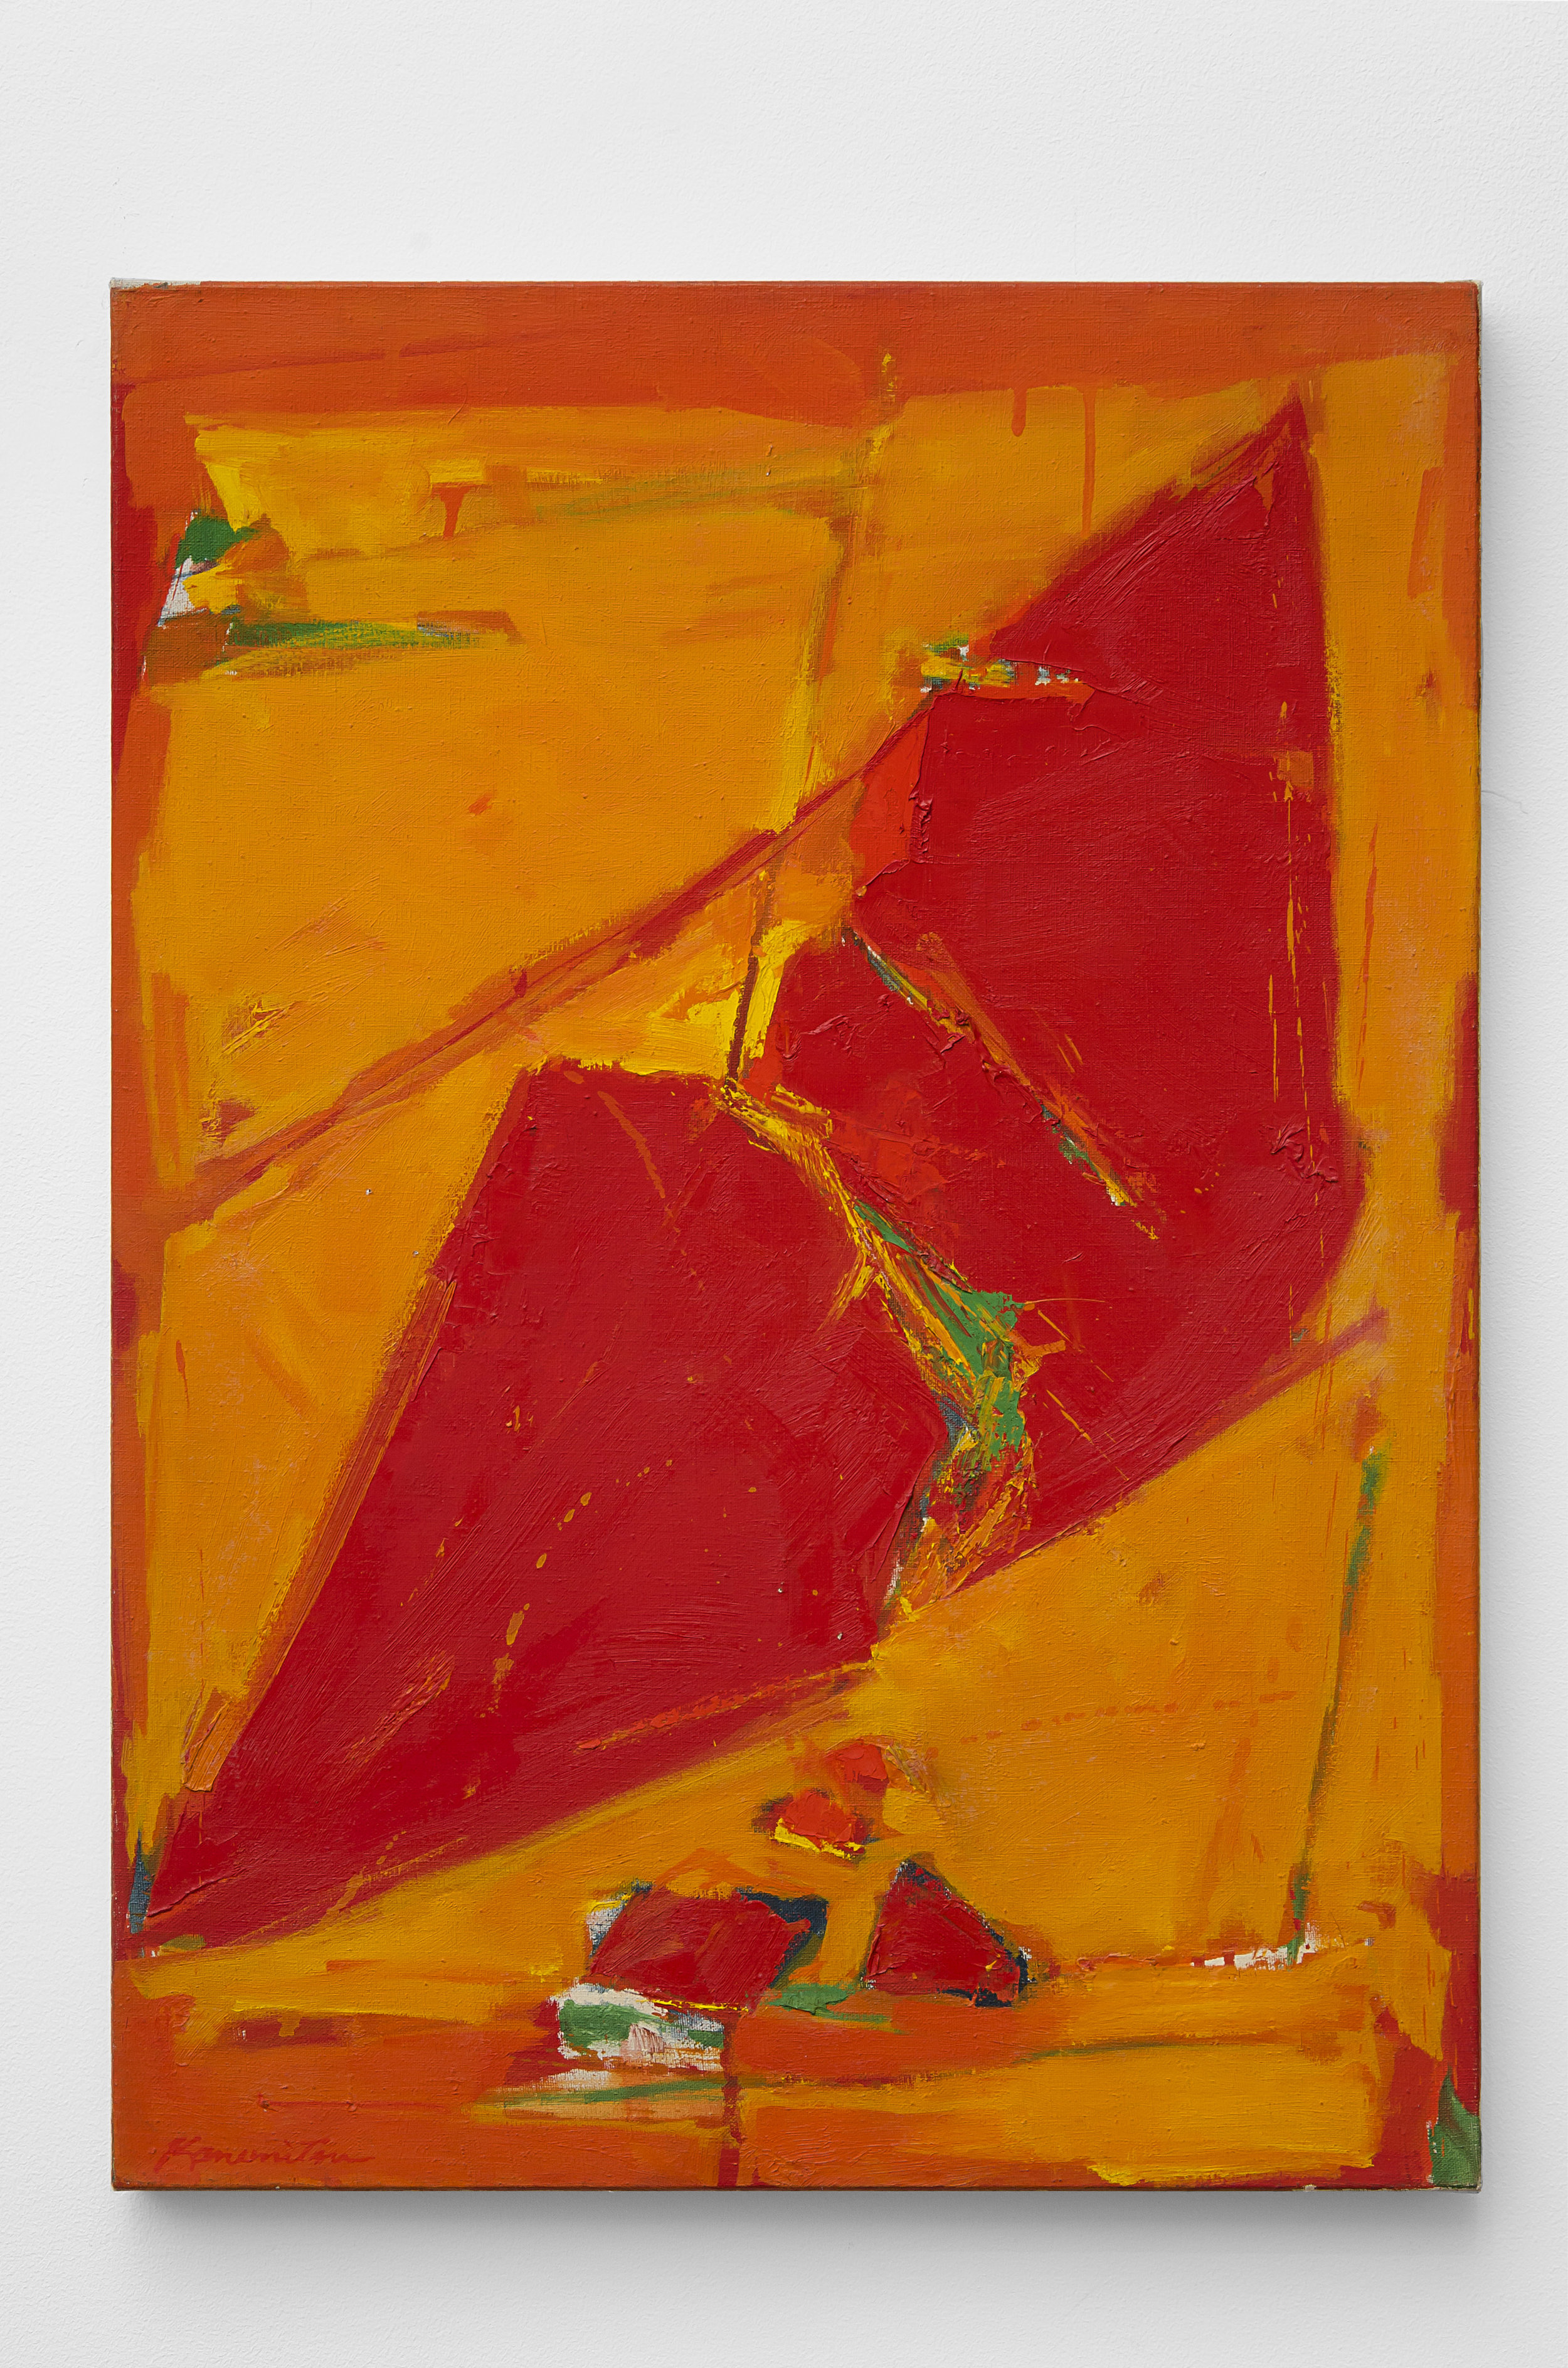 Untitled (Red) , 1960  acrylic on canvas 28 x 20 inches; 71.1 x 50.8 centimeters  $12,000